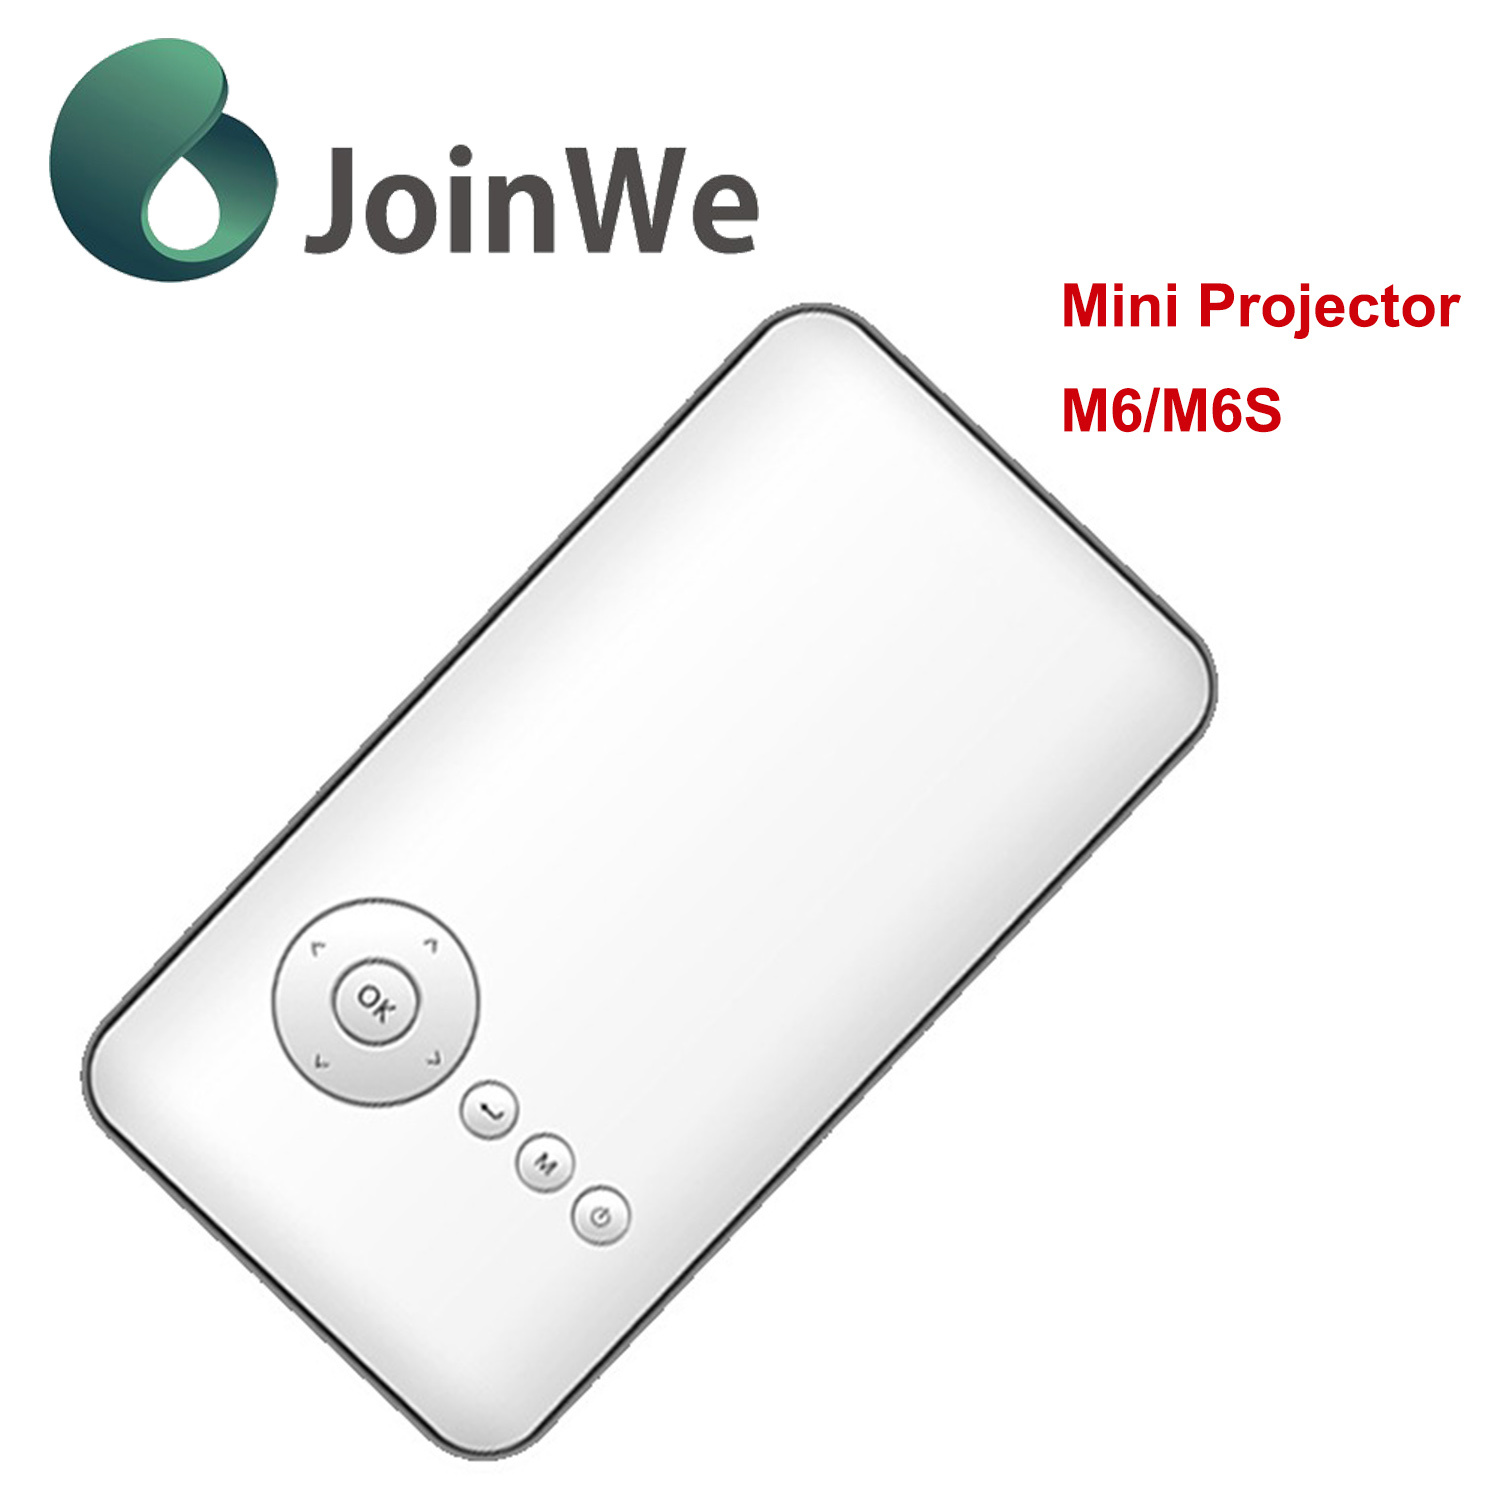 Multimedia Portable HD LCD Smart Mini Projector M6/M6s pictures & photos